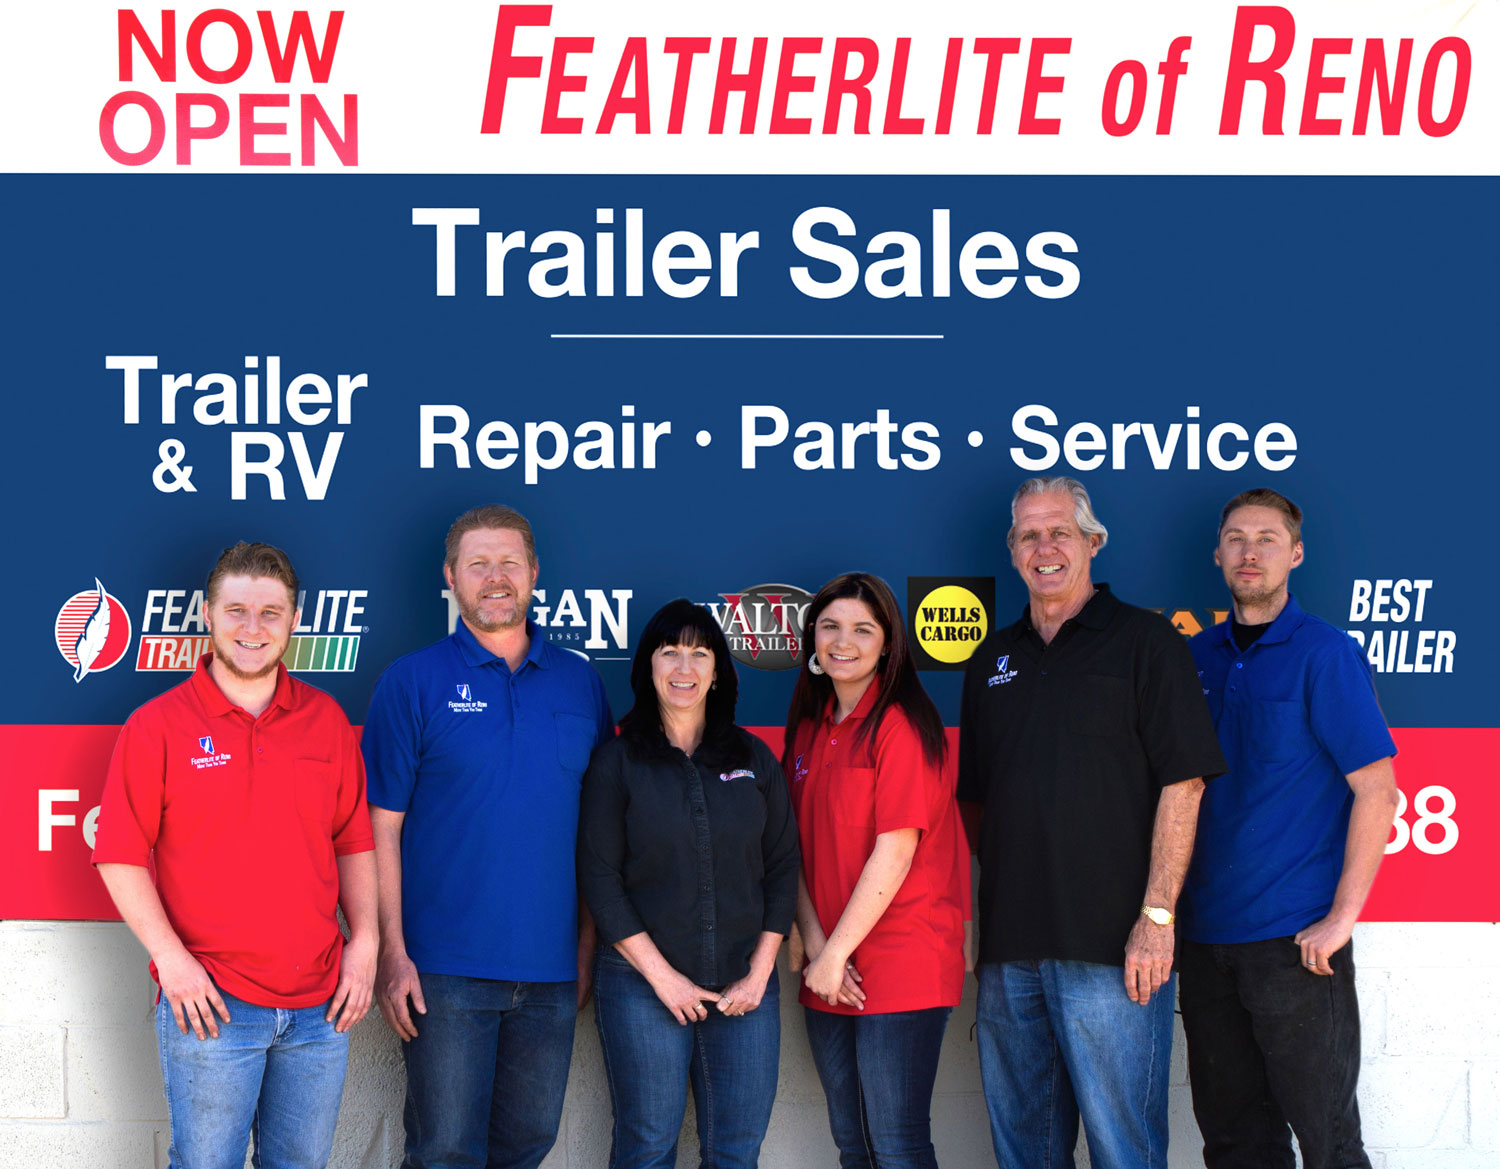 featherlite-group-photo-520